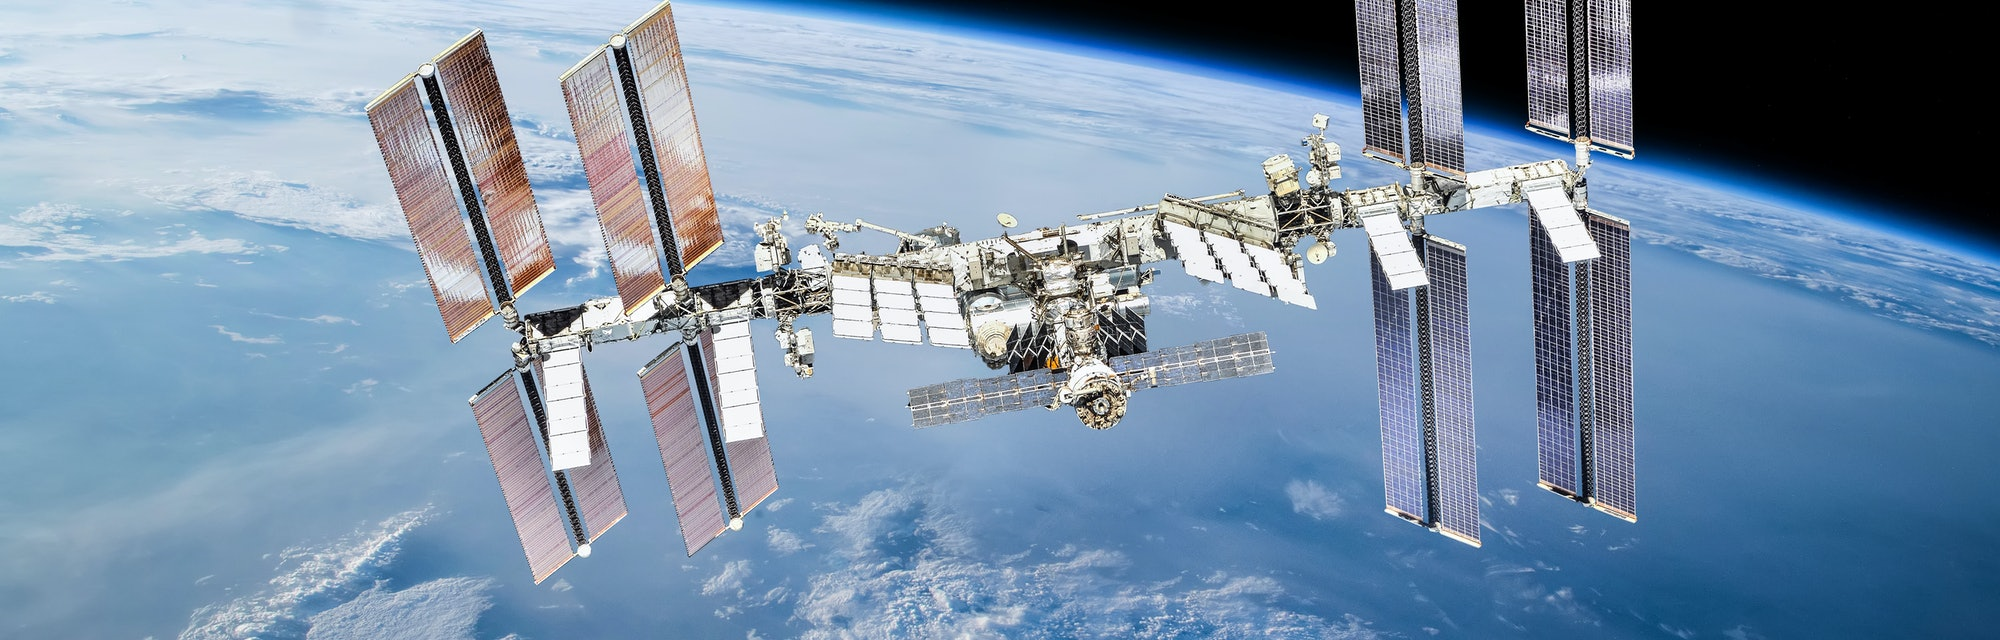 International space station on orbit of Earth planet. ISS. Dark background. Elements of this image f...